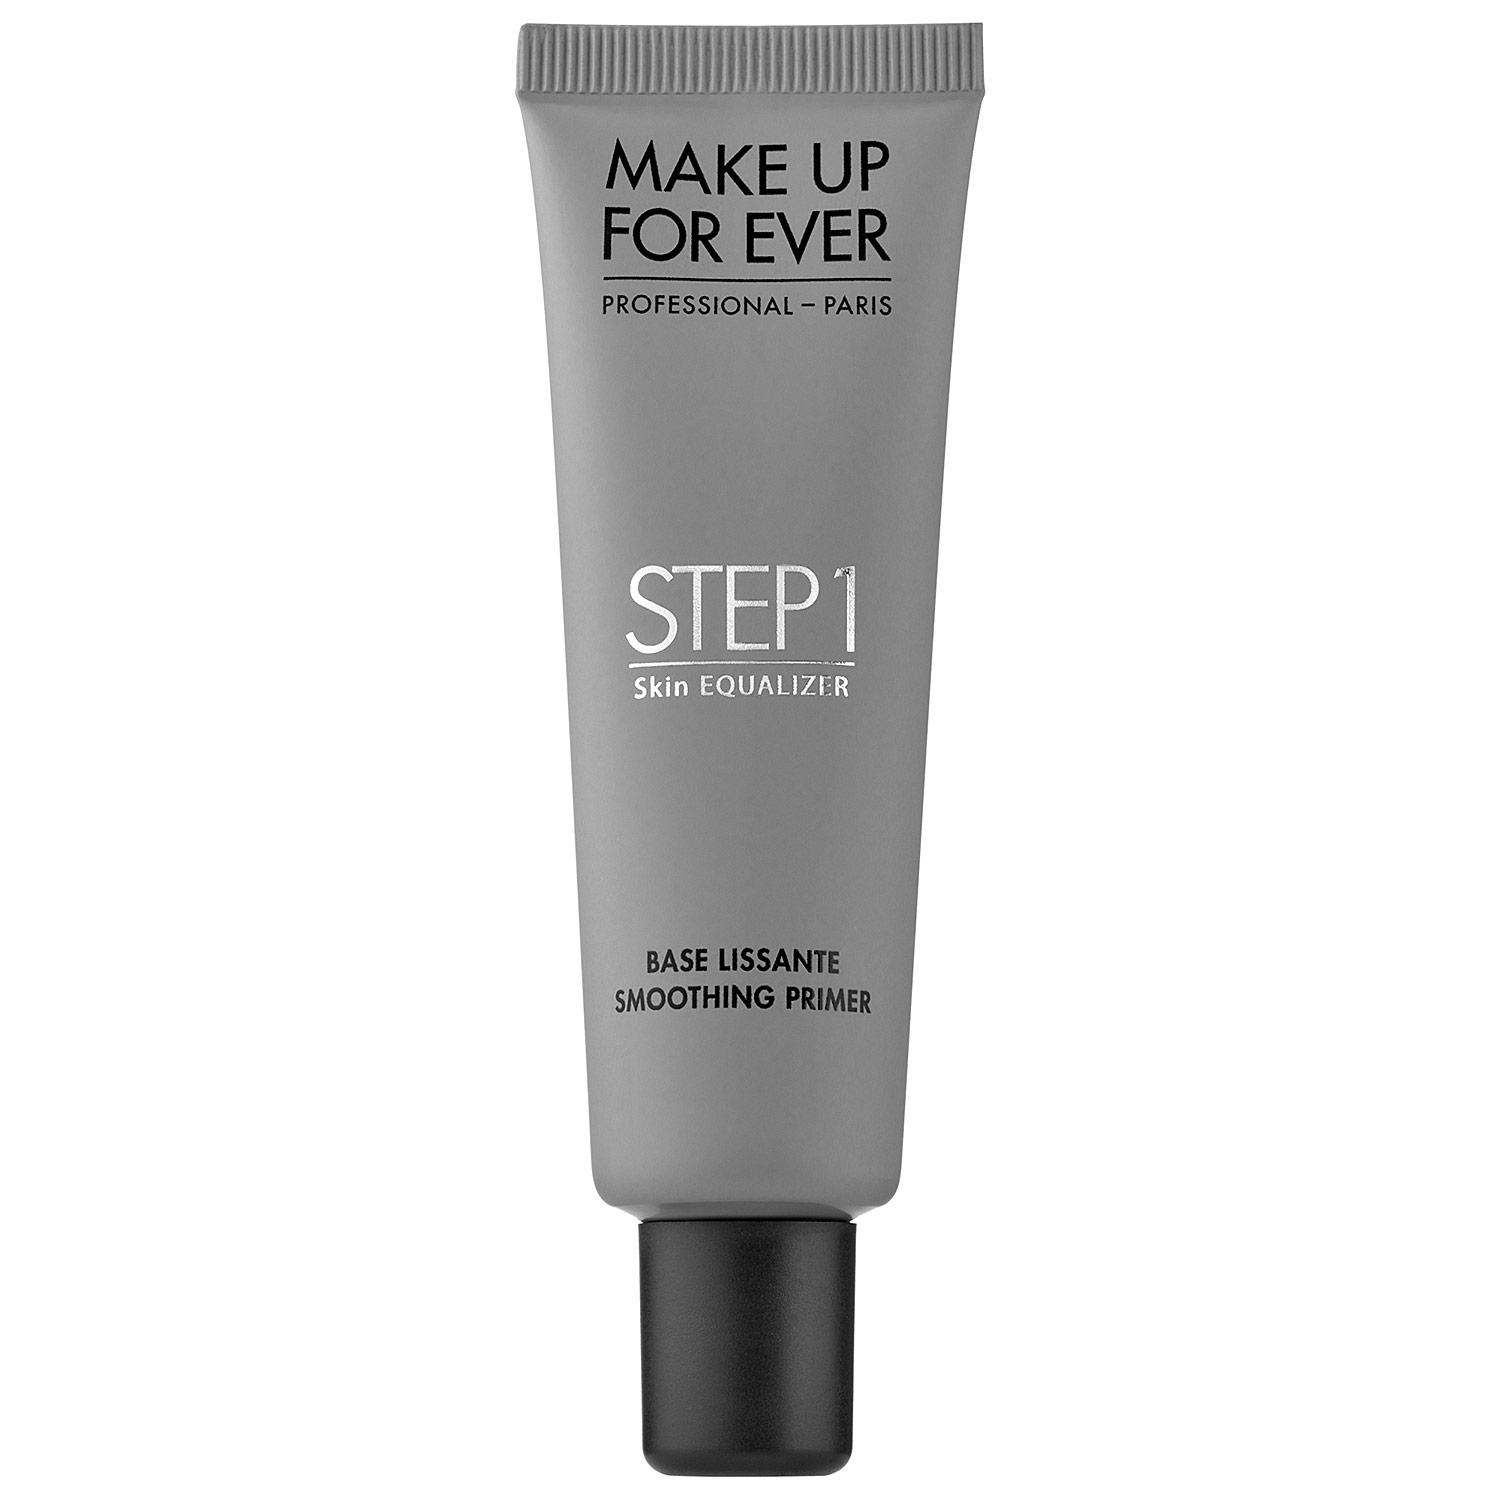 Makeup Forever Step 1 Skin Equalizer Smoothing Primer